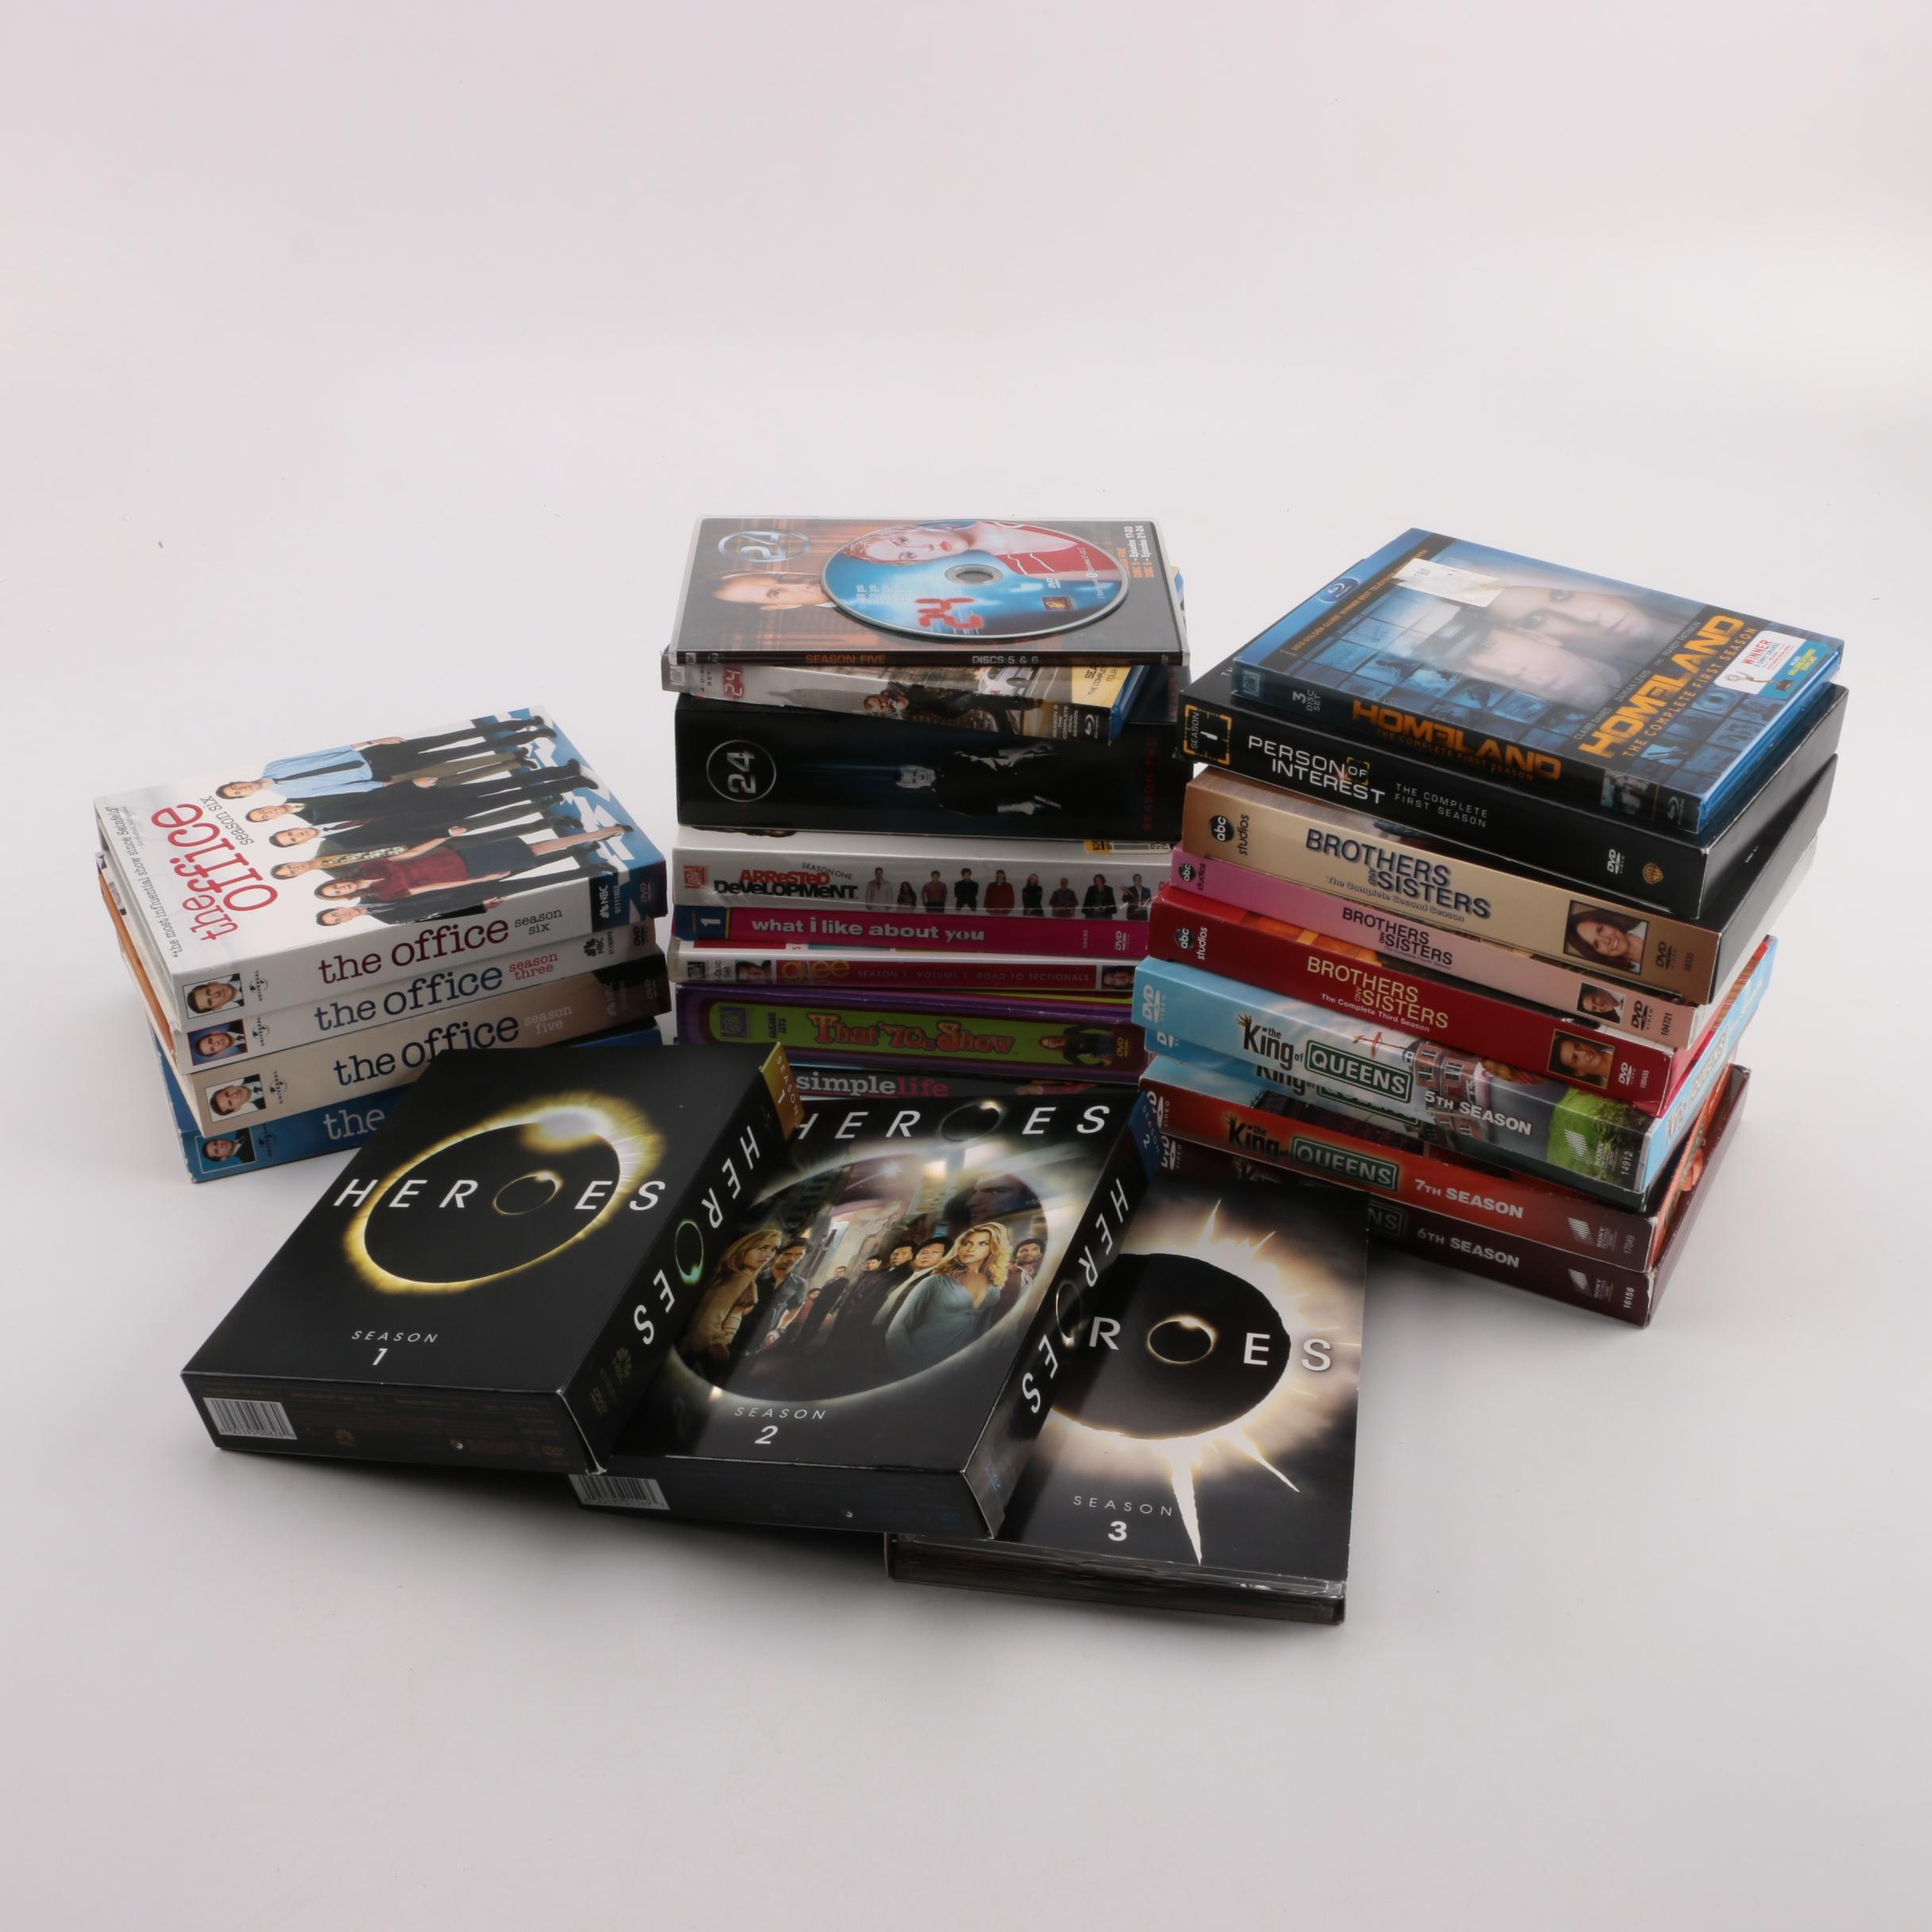 """Heroes"", ""The Office"", ""24"" and other Television Series DVDs"